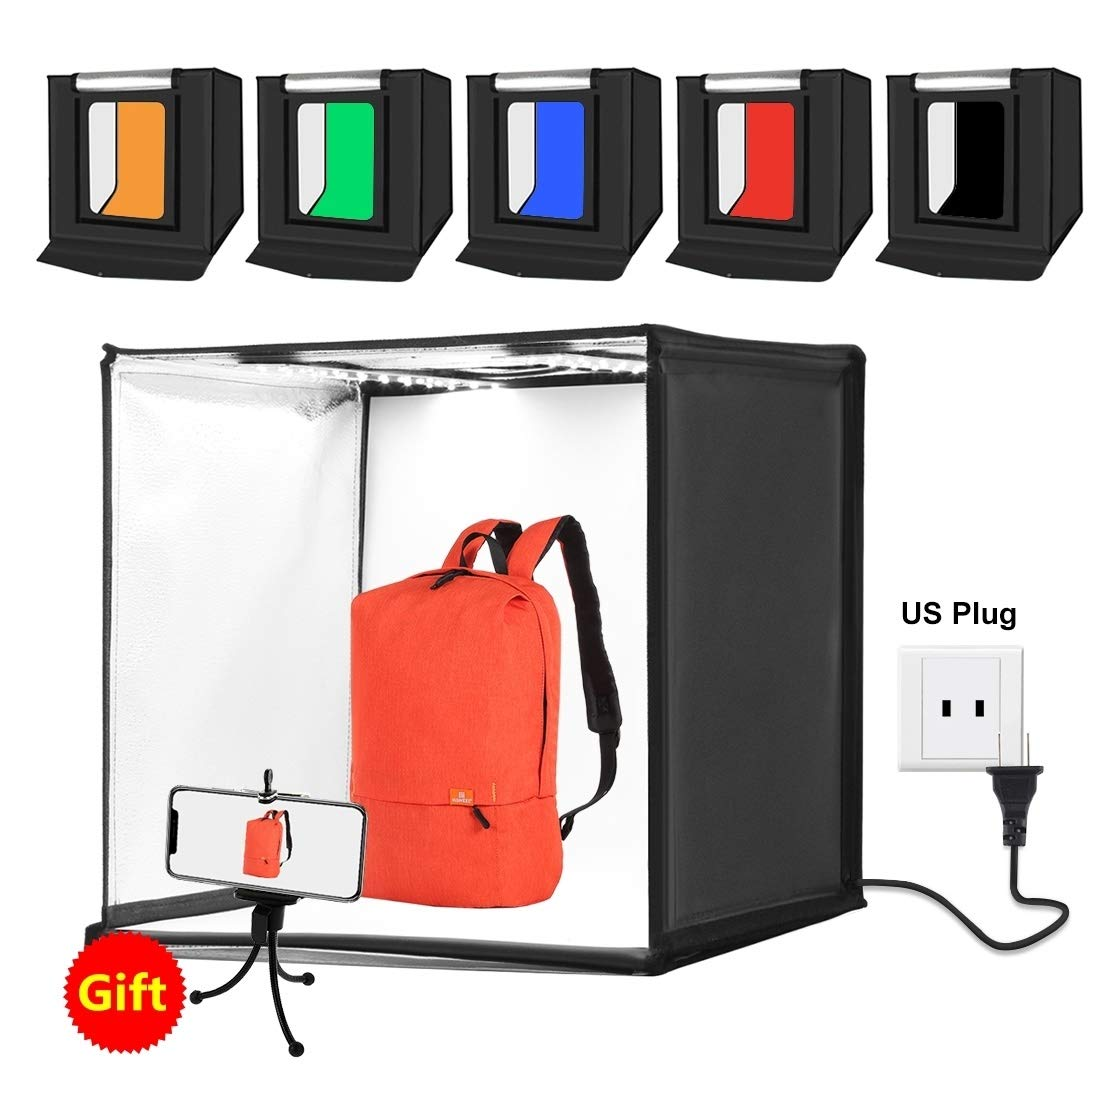 Photo Studio Light Box Portable 60 x 60 x 60 cm Light Tent LED 5500K Mini 60W Photography Studio Tent Kit with 6 Removable Backdrop (Black Orange White Green Blue Red) Durable ( Color : Color4 ) by CAOMING